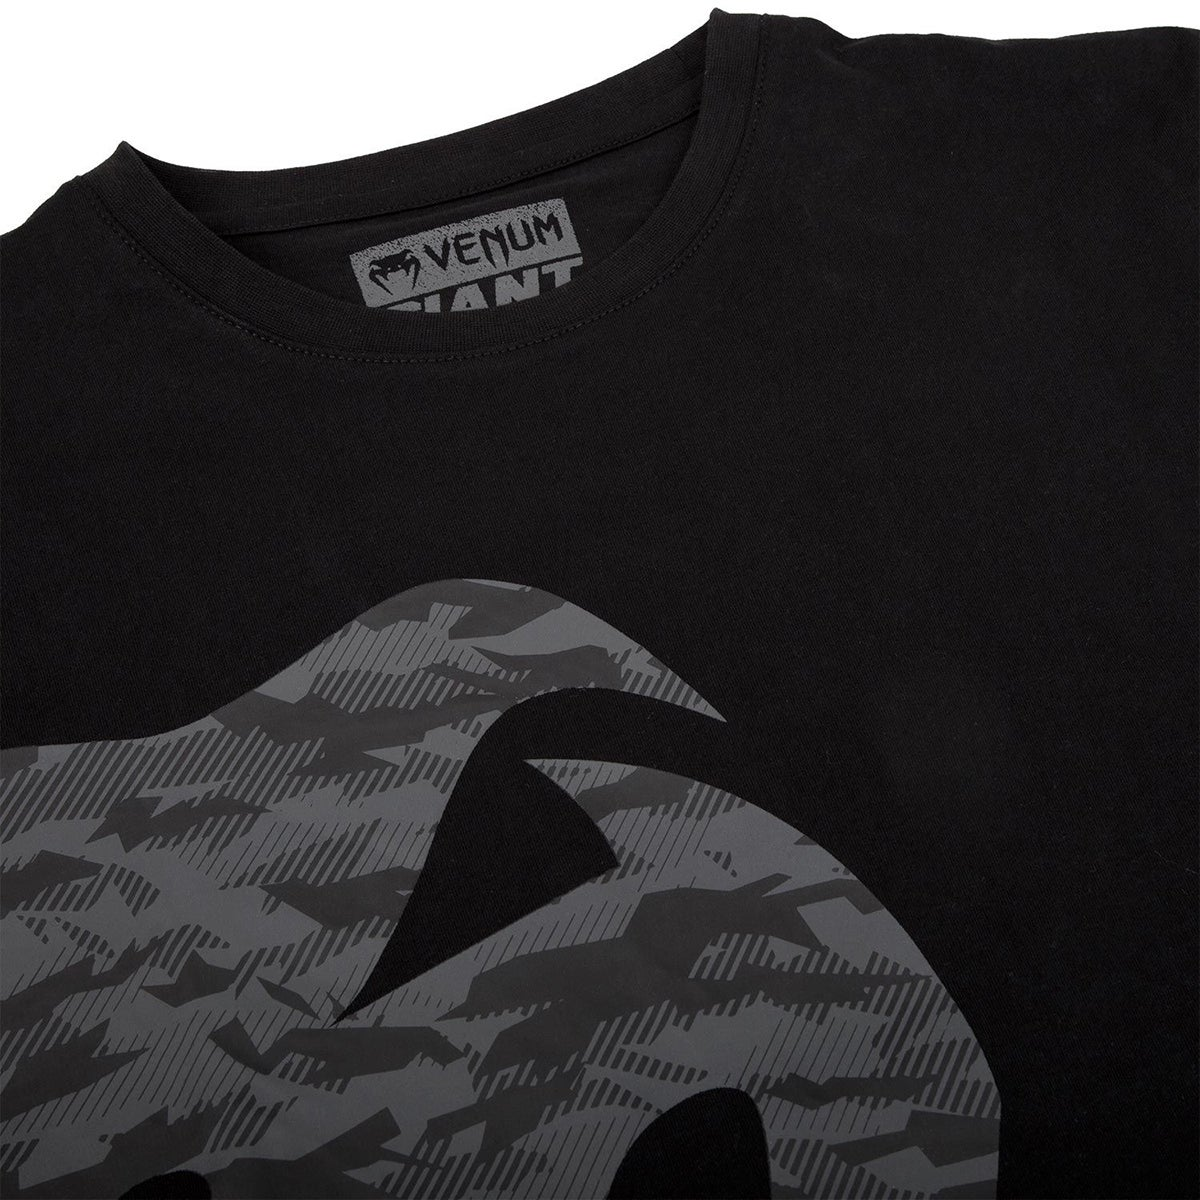 Venum Giant Short Sleeve T-Shirt Gray//Black